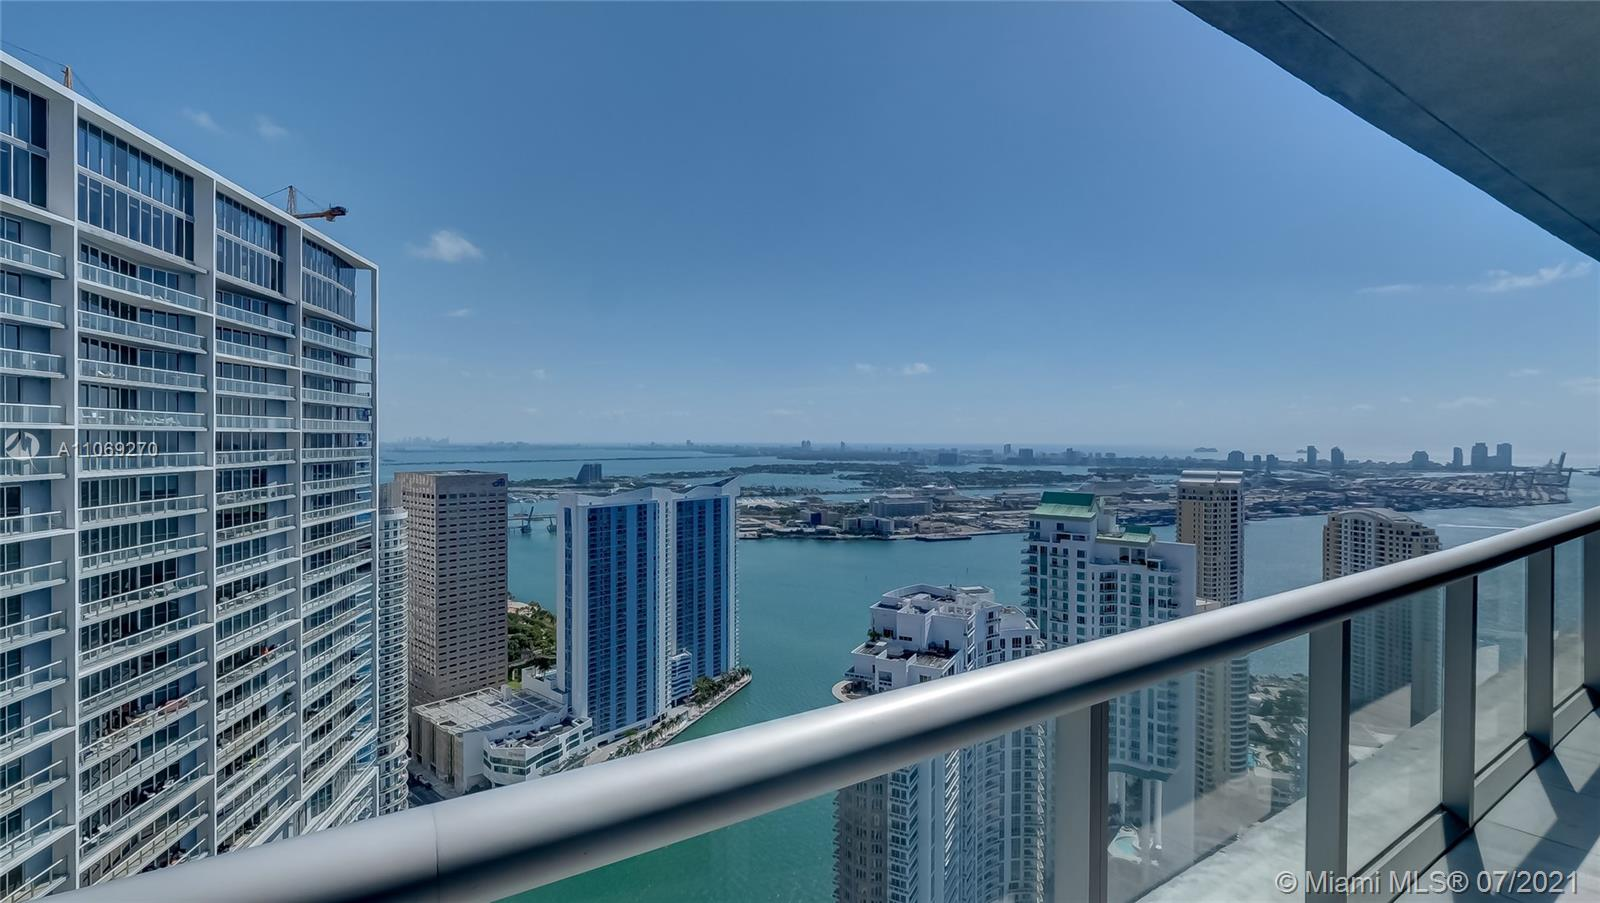 Luxury condo on the 54th floor boasting beautiful, capivating views of the skyline and ocean bay while centrally located in the heart of Brickell. Unit offers a bright and welcoming ambiance, 2bed - 2bath, Marble floors, top of the line appliances, in-unit W&D, ample closet space, soak tup in master room with standup shower,  open living space with den/office and many great details. The building is fully loaded with amenities; A charming, luxurious spa, top of the line gym, iconic - olympic size pool, restaurants, and a short walking distance or scooter ride to surrounding activites, restaurants, Whole Foods, shopping and Miami night life.